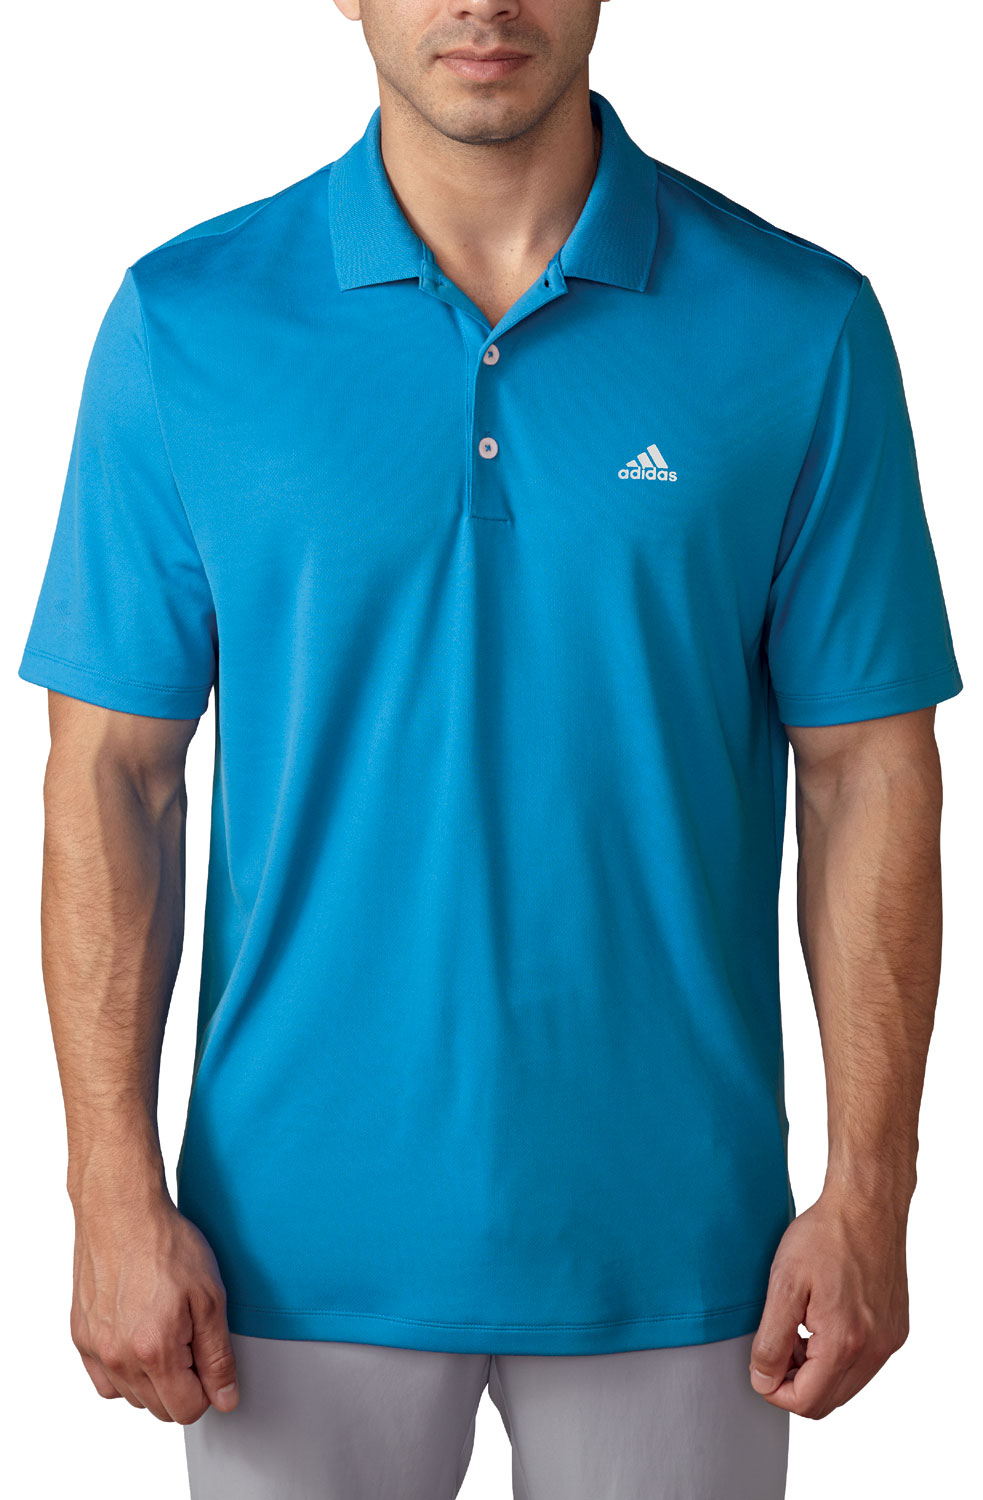 Adidas Branded Performance Polo Golf Shirt Mens Closeout